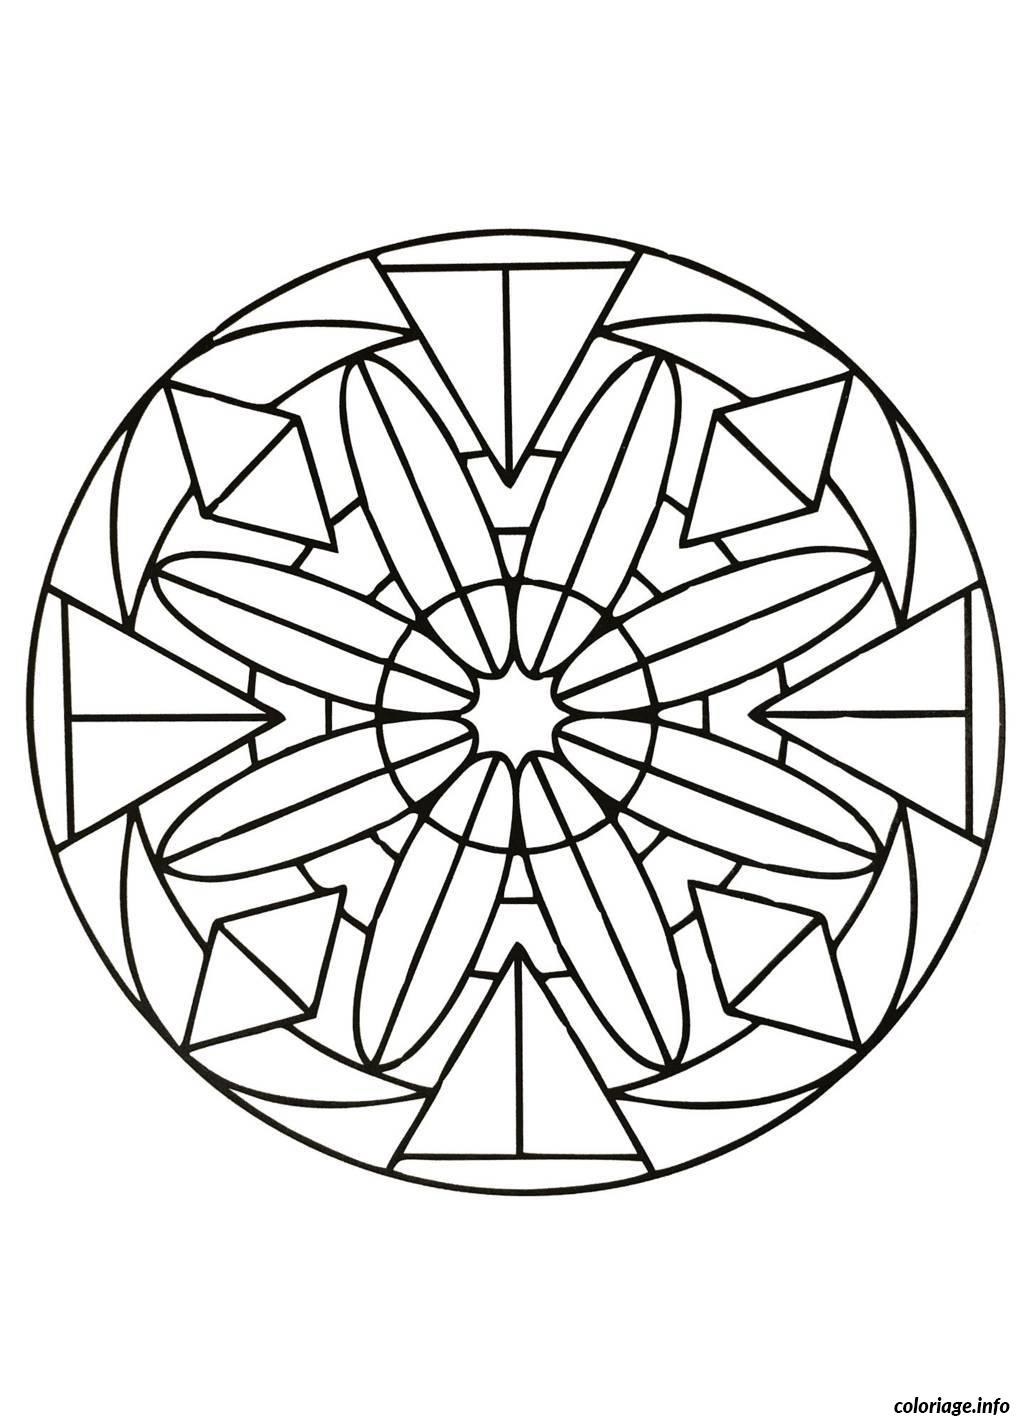 Coloriage mandalas to download for free 9 dessin - Art coloriage ...